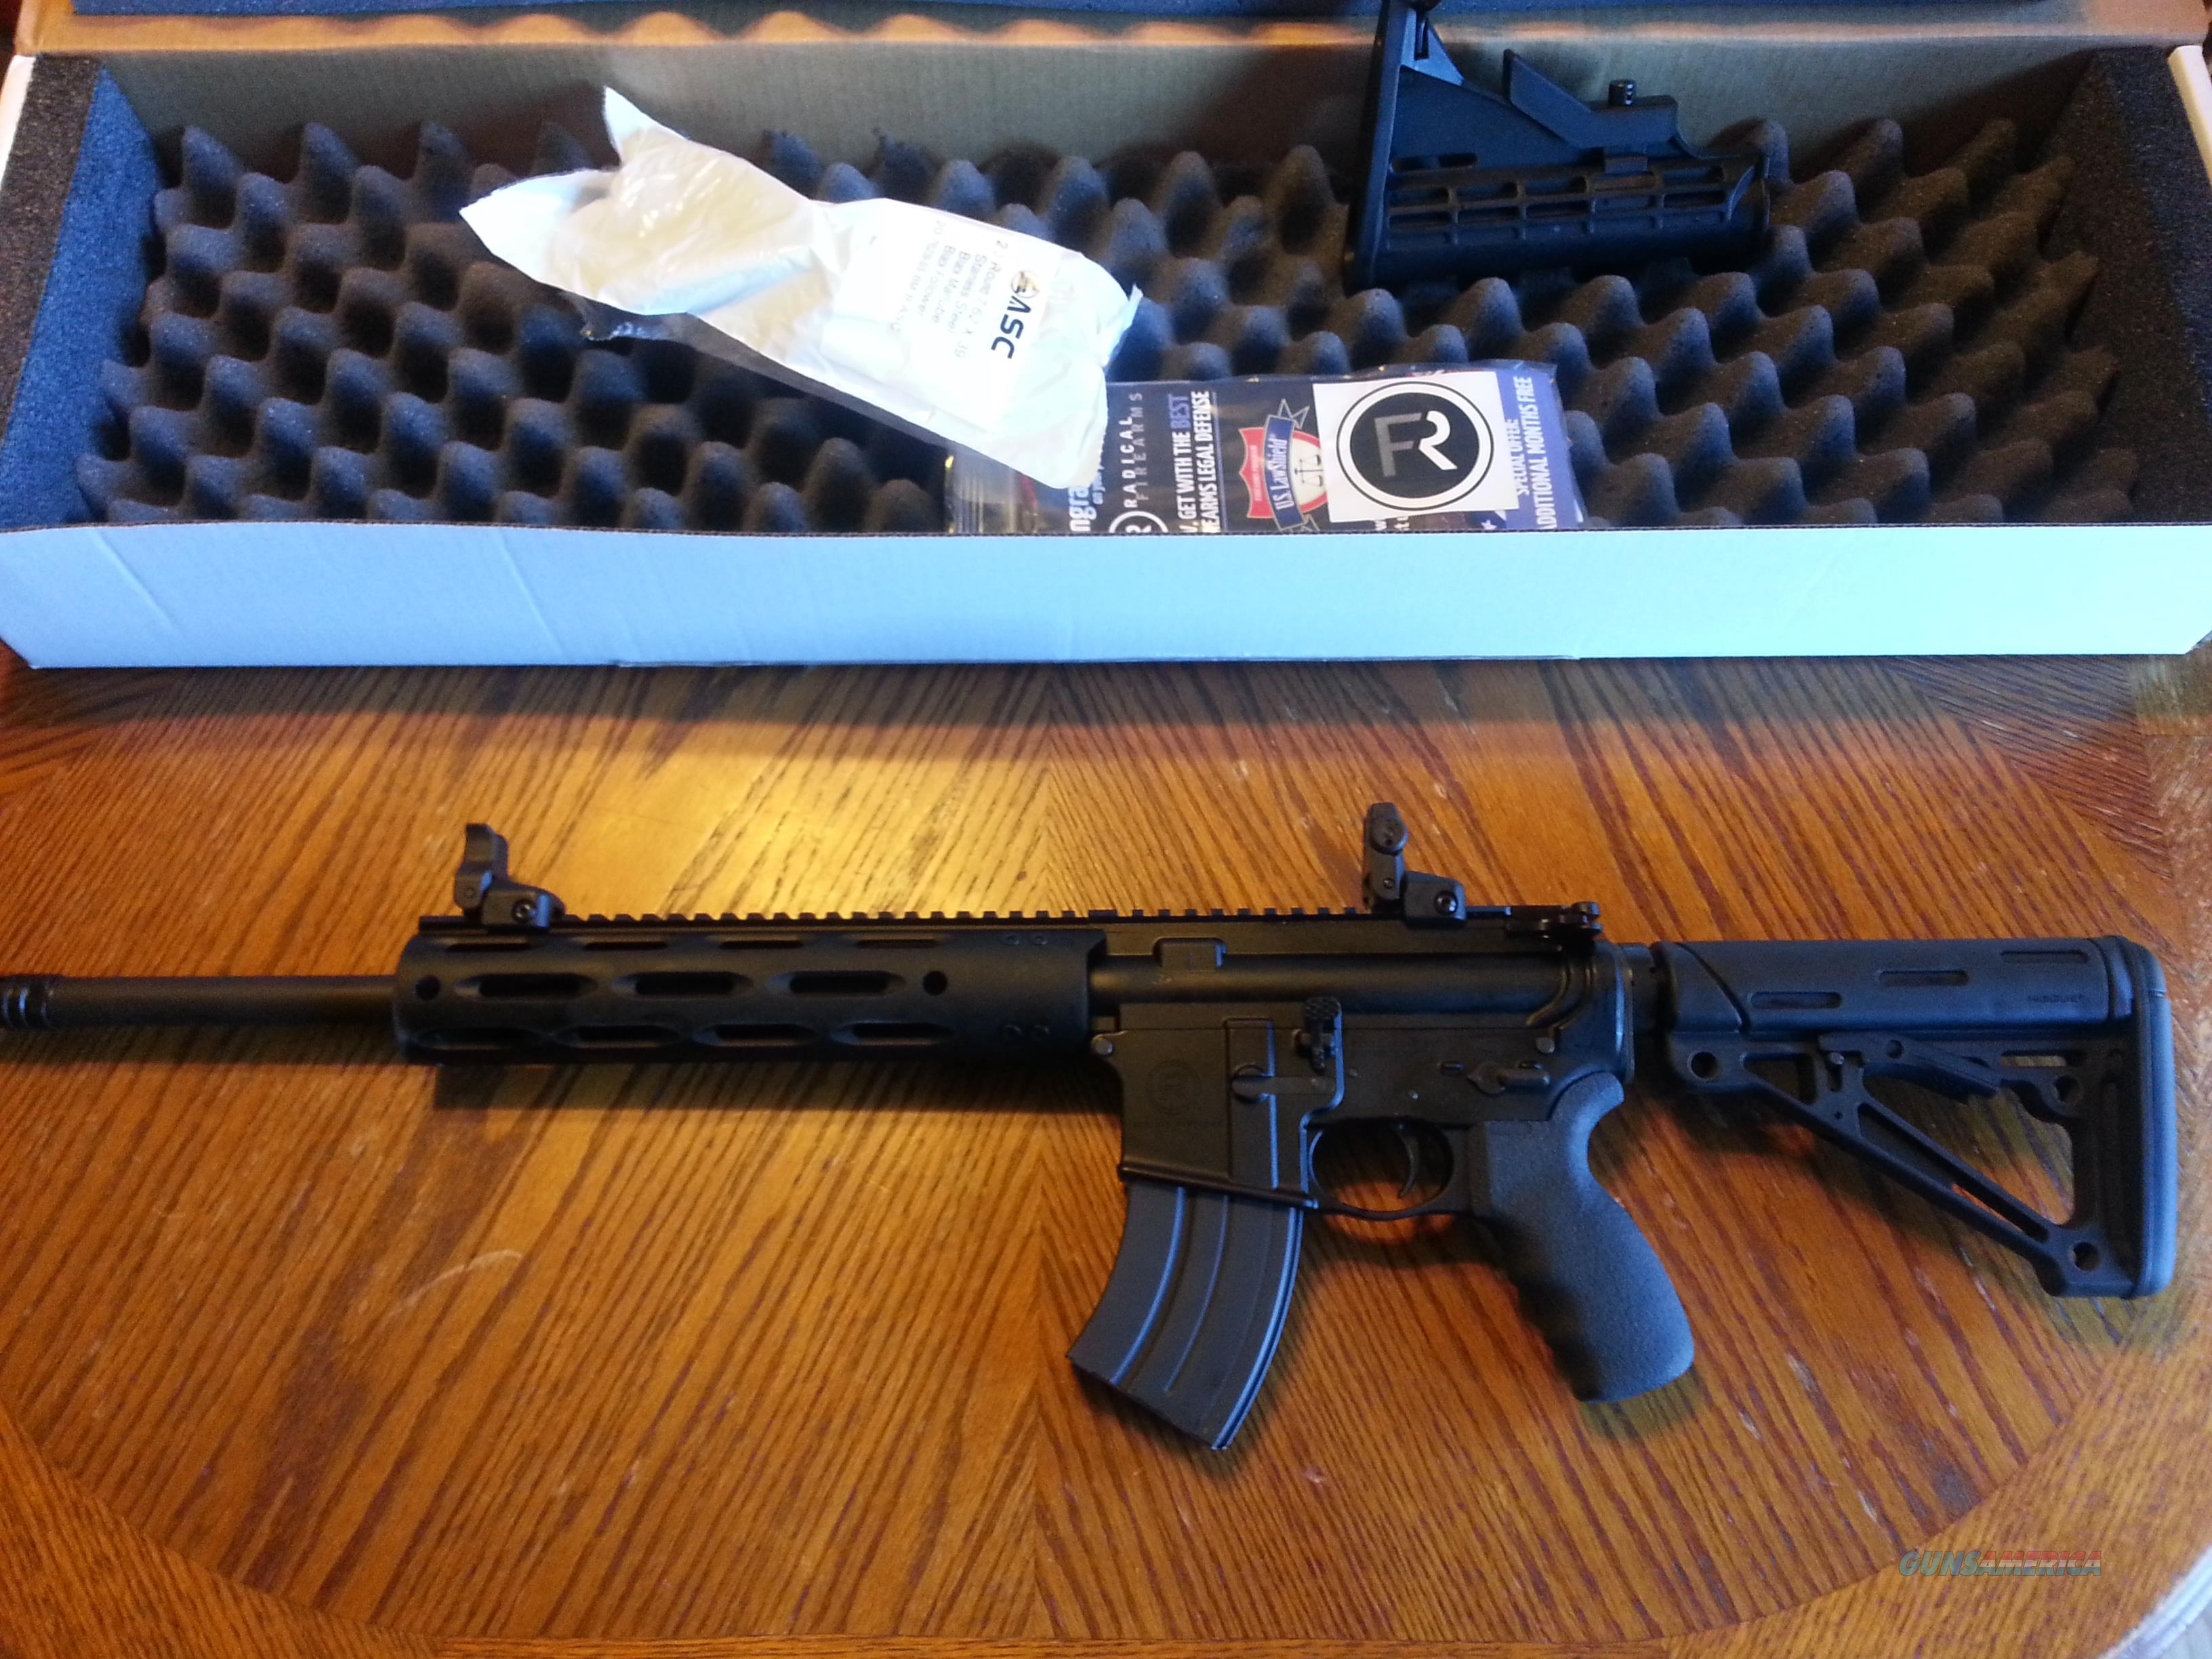 "Radical Firearms AR15  AR 15  7.62x39 AK 47 Round  NIB 20 rd mag 16"" Alum  Handguard XTRAS Hogue Stock Pachmayr Grip Ruger Flip Up Sights  Guns > Rifles > AR-15 Rifles - Small Manufacturers > Complete Rifle"